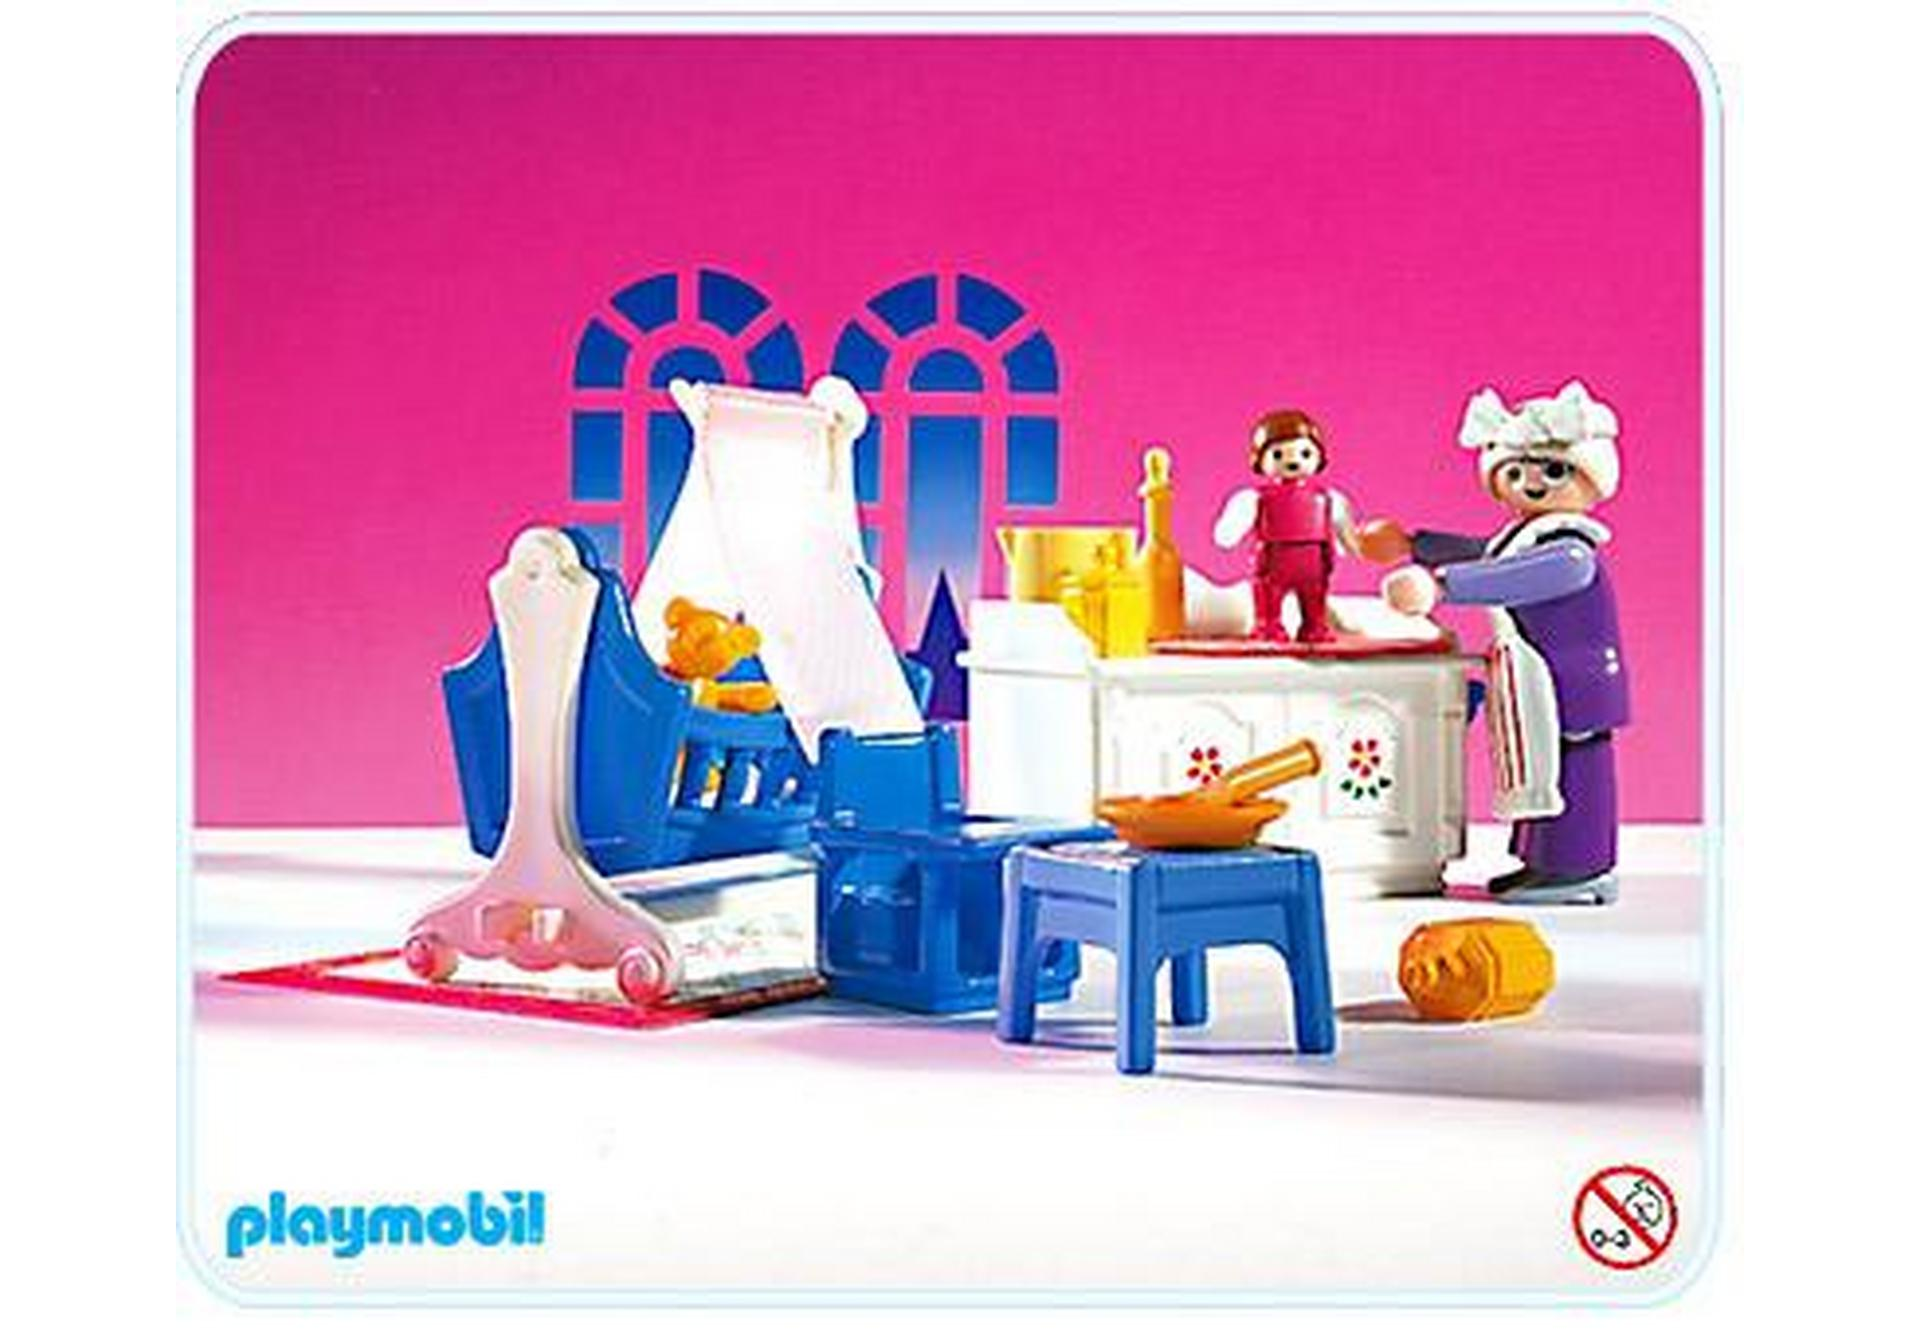 Chambre du b b 5313 a playmobil france for Playmobil chambre enfant